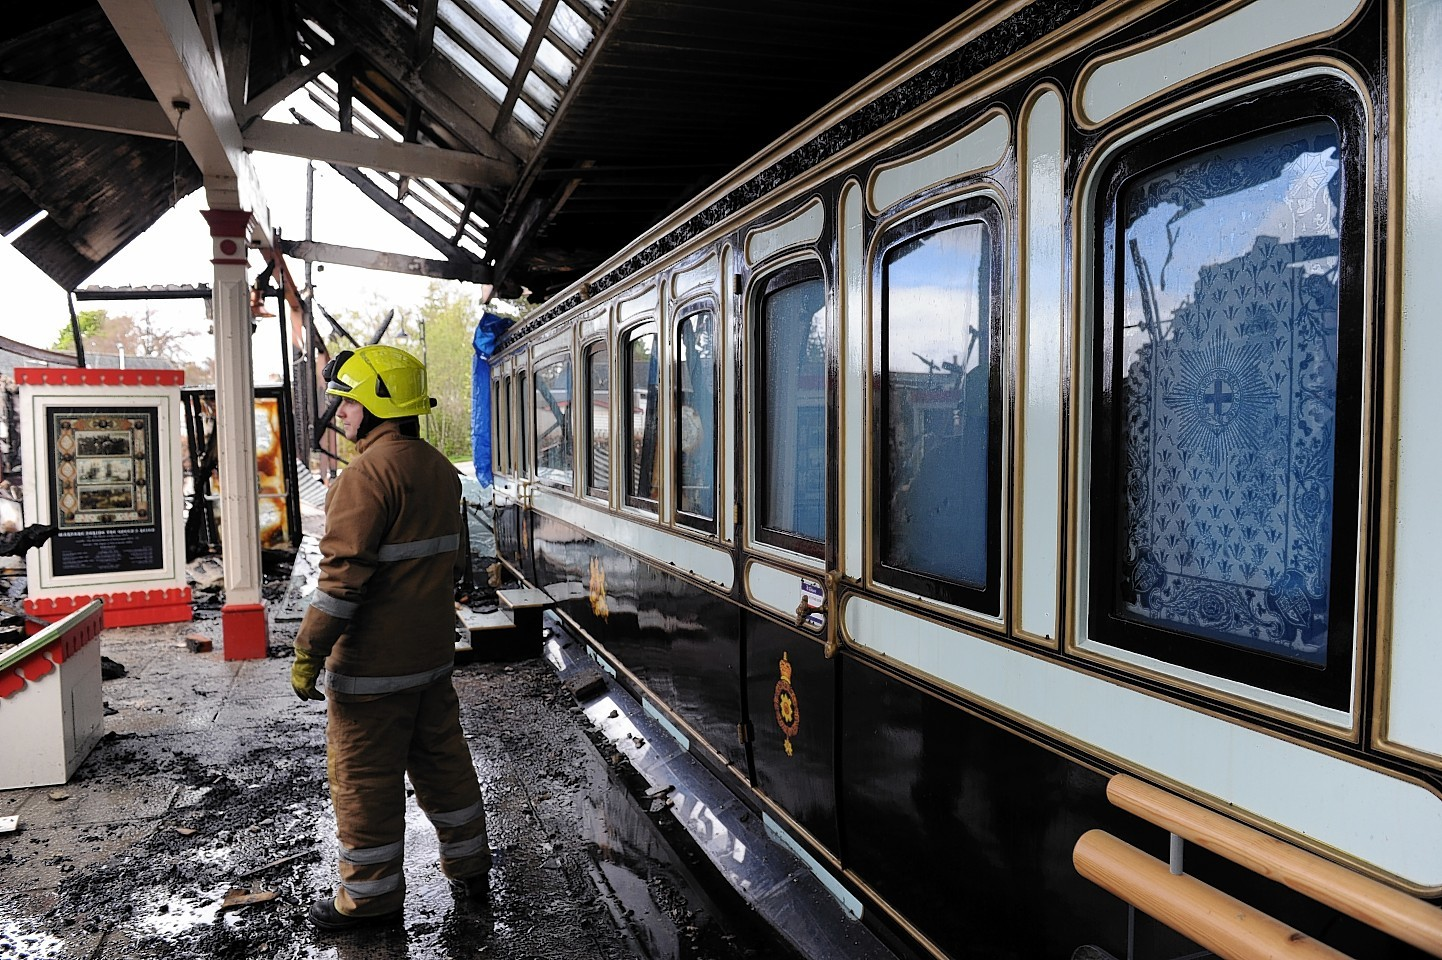 Firefighters managed to save the £450,000 replica of Queen Victoria's royal carriage